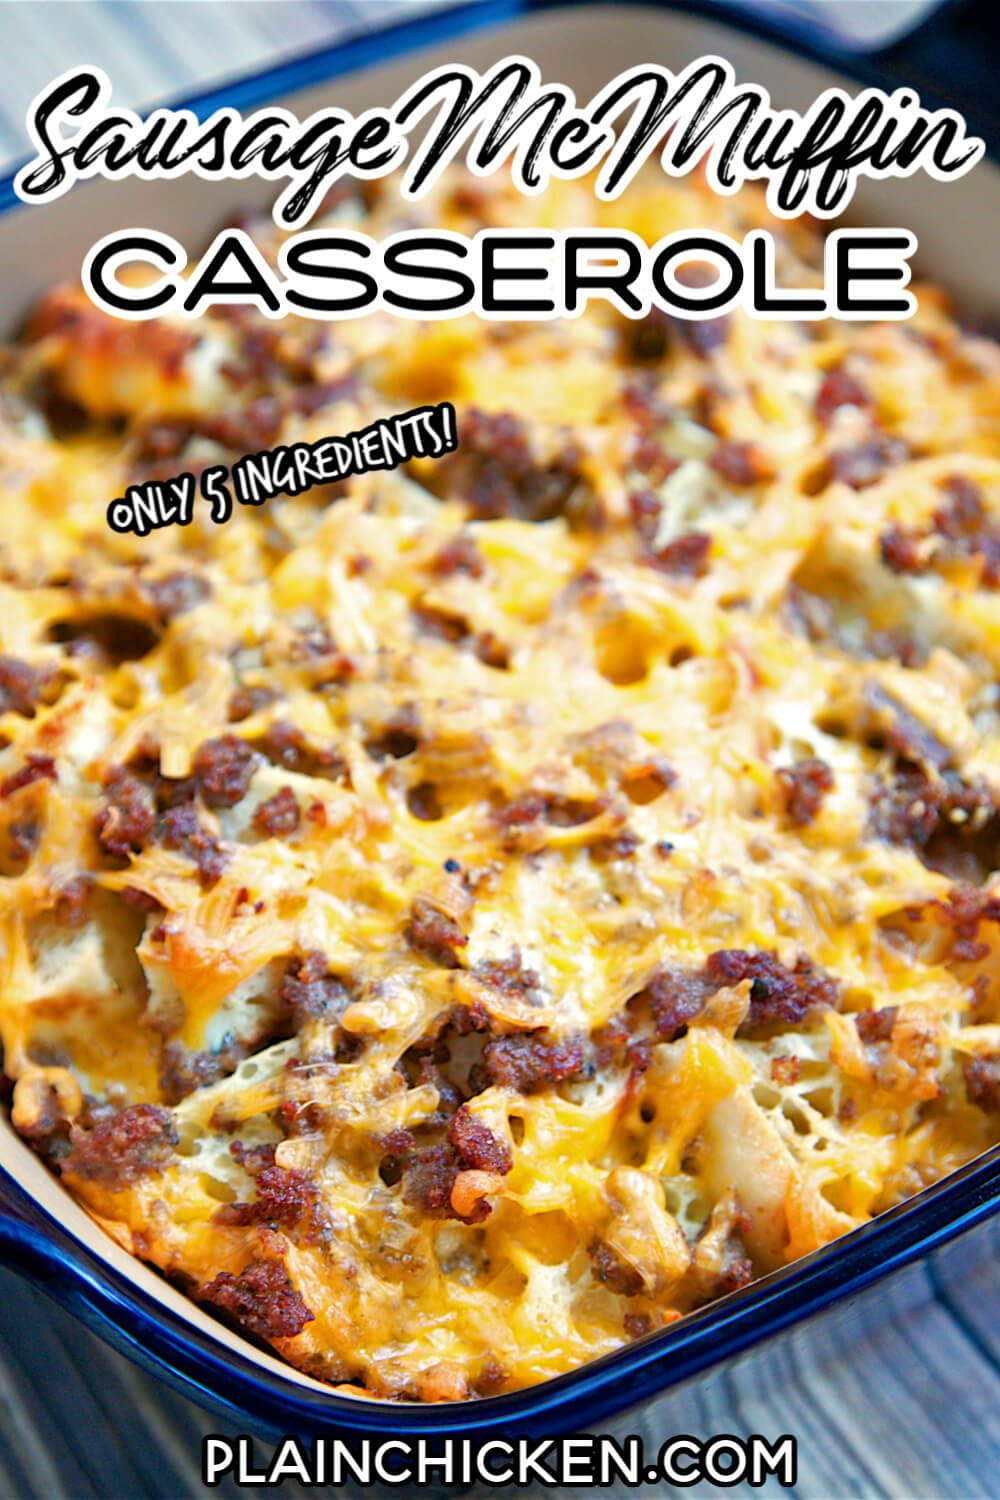 Sausage McMuffin Casserole - Only 5 Ingredients!